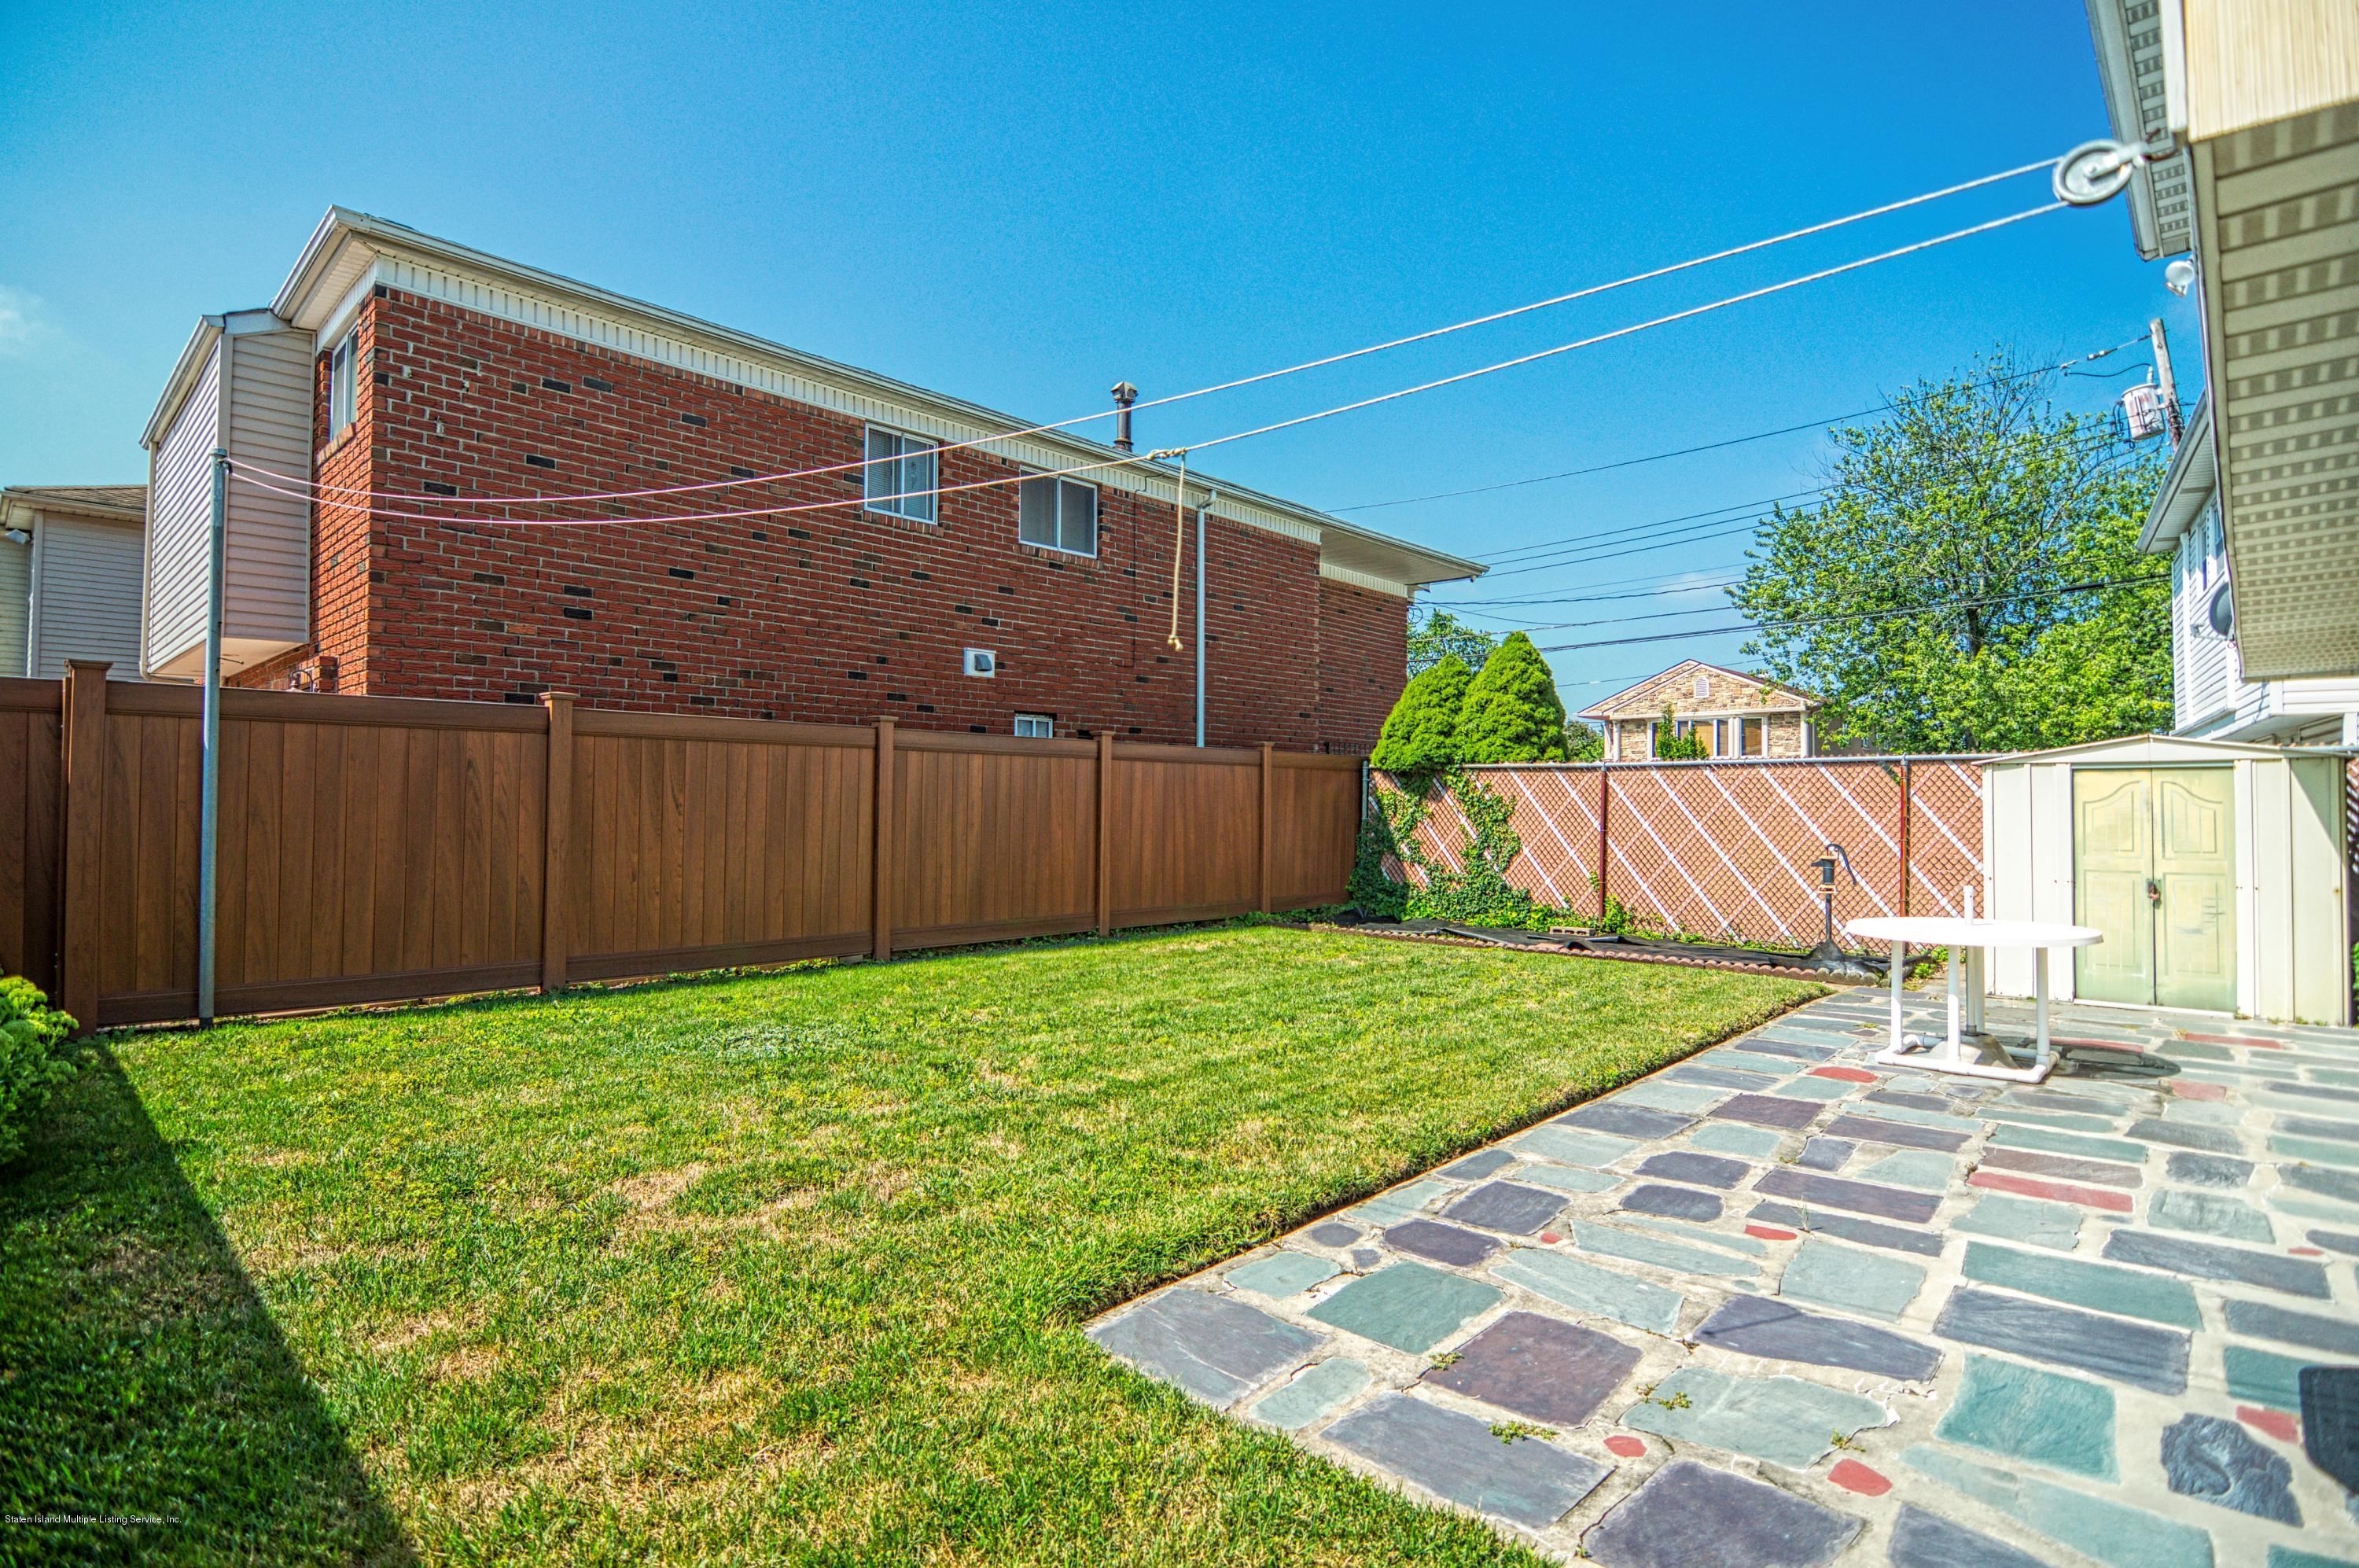 Single Family - Detached 124 Queen Street  Staten Island, NY 10314, MLS-1131413-19